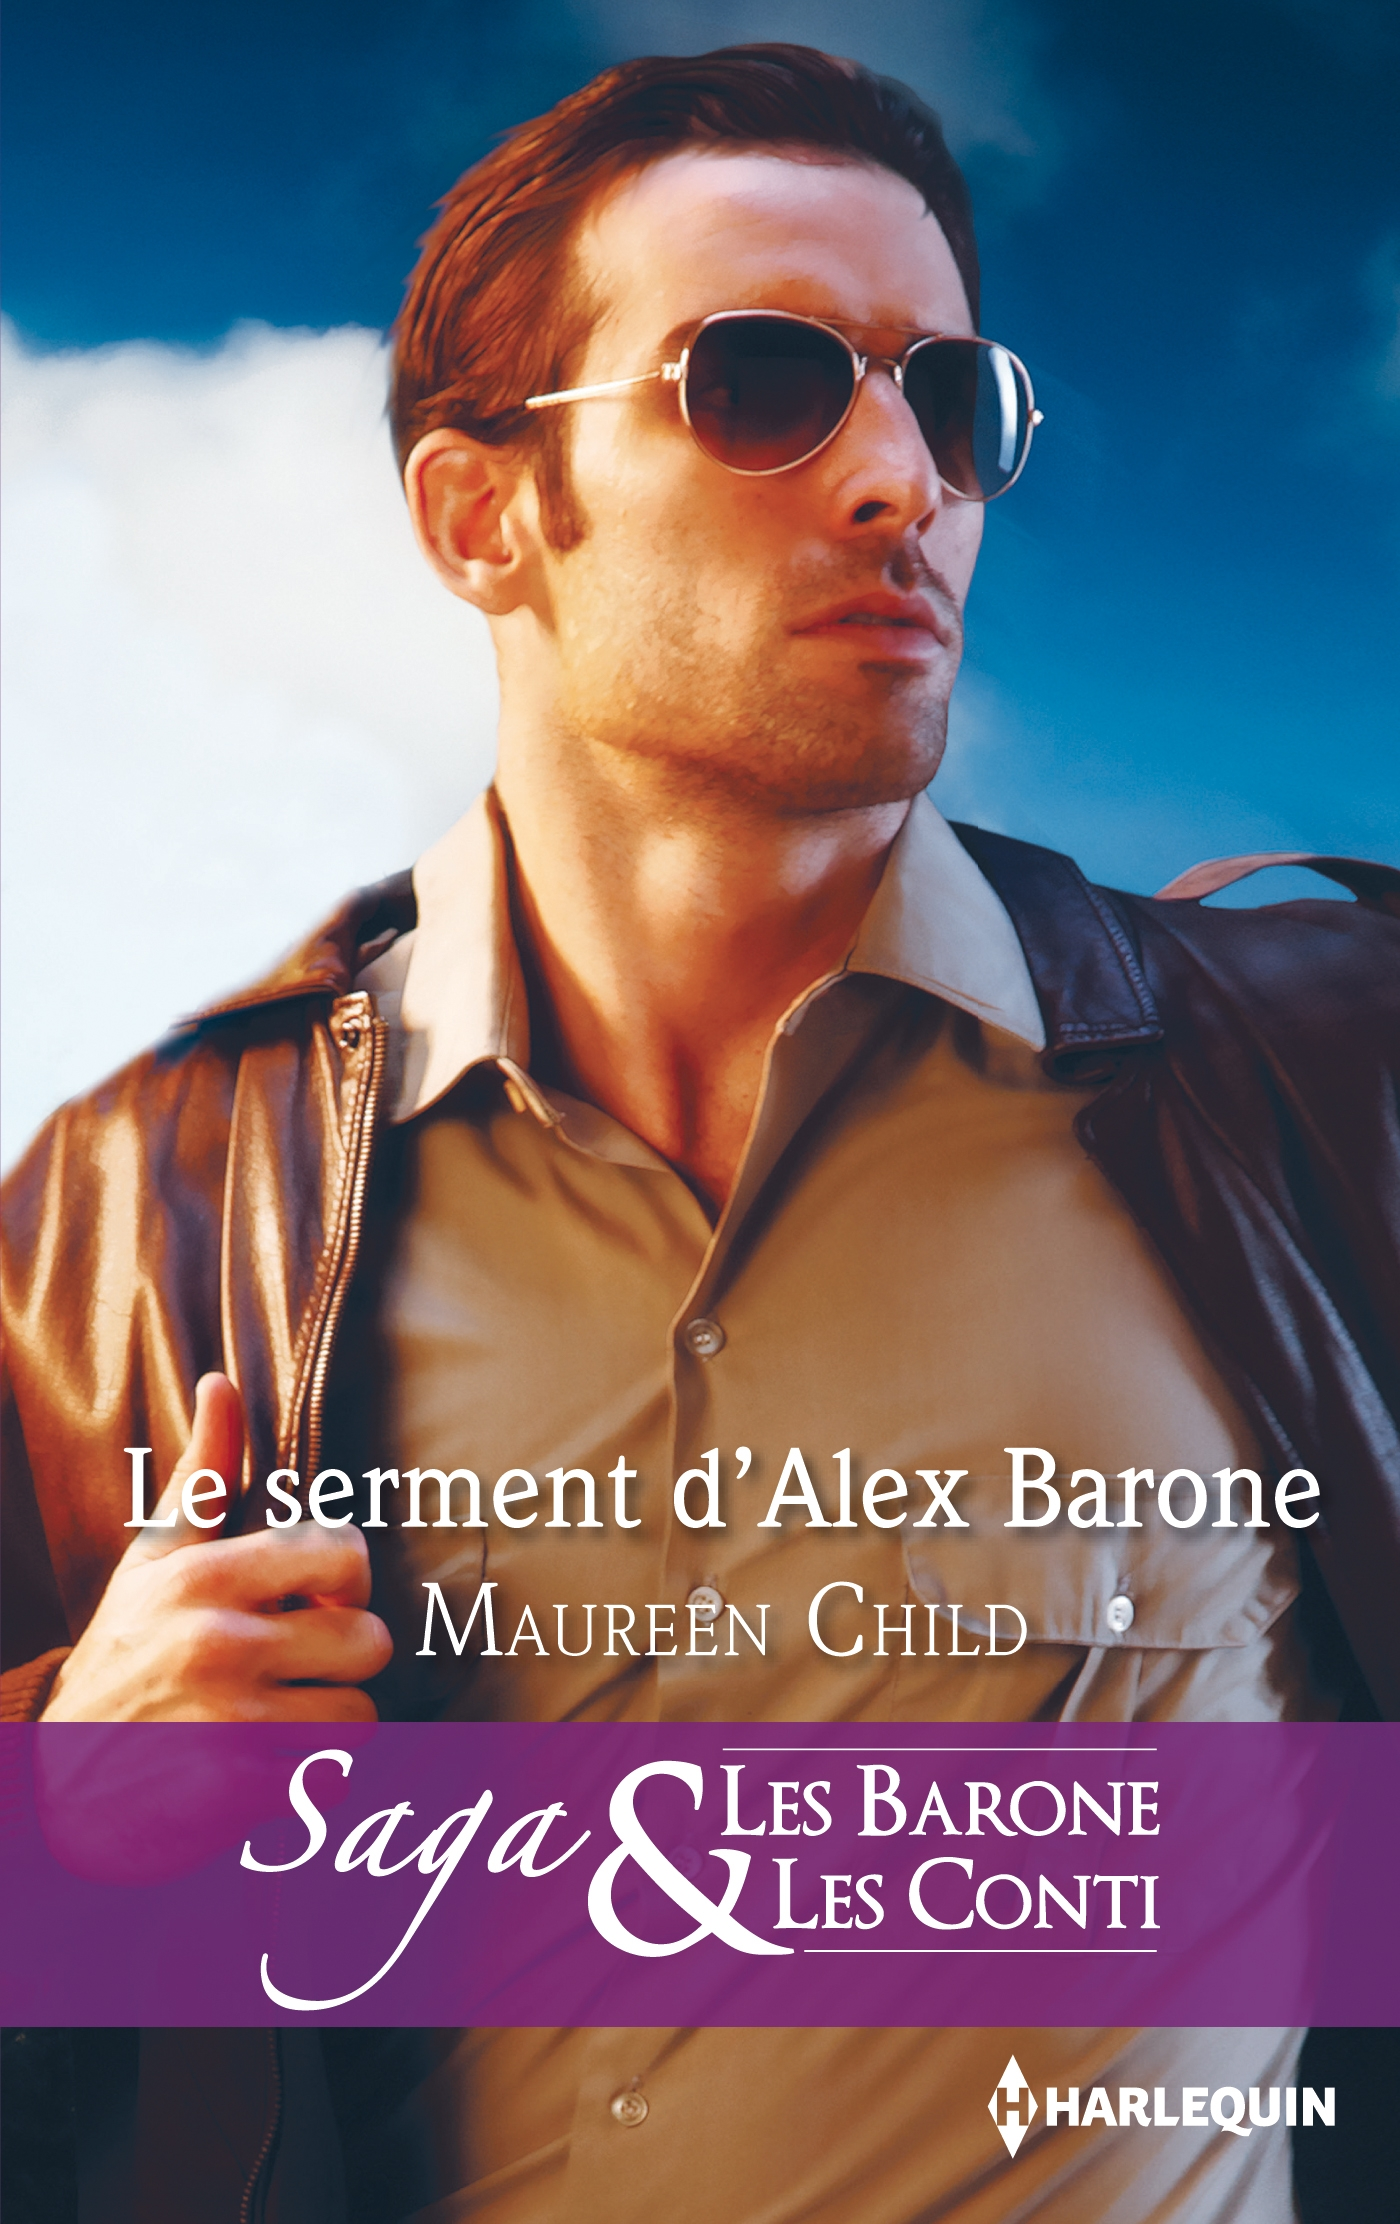 Le serment d'Alex Barone